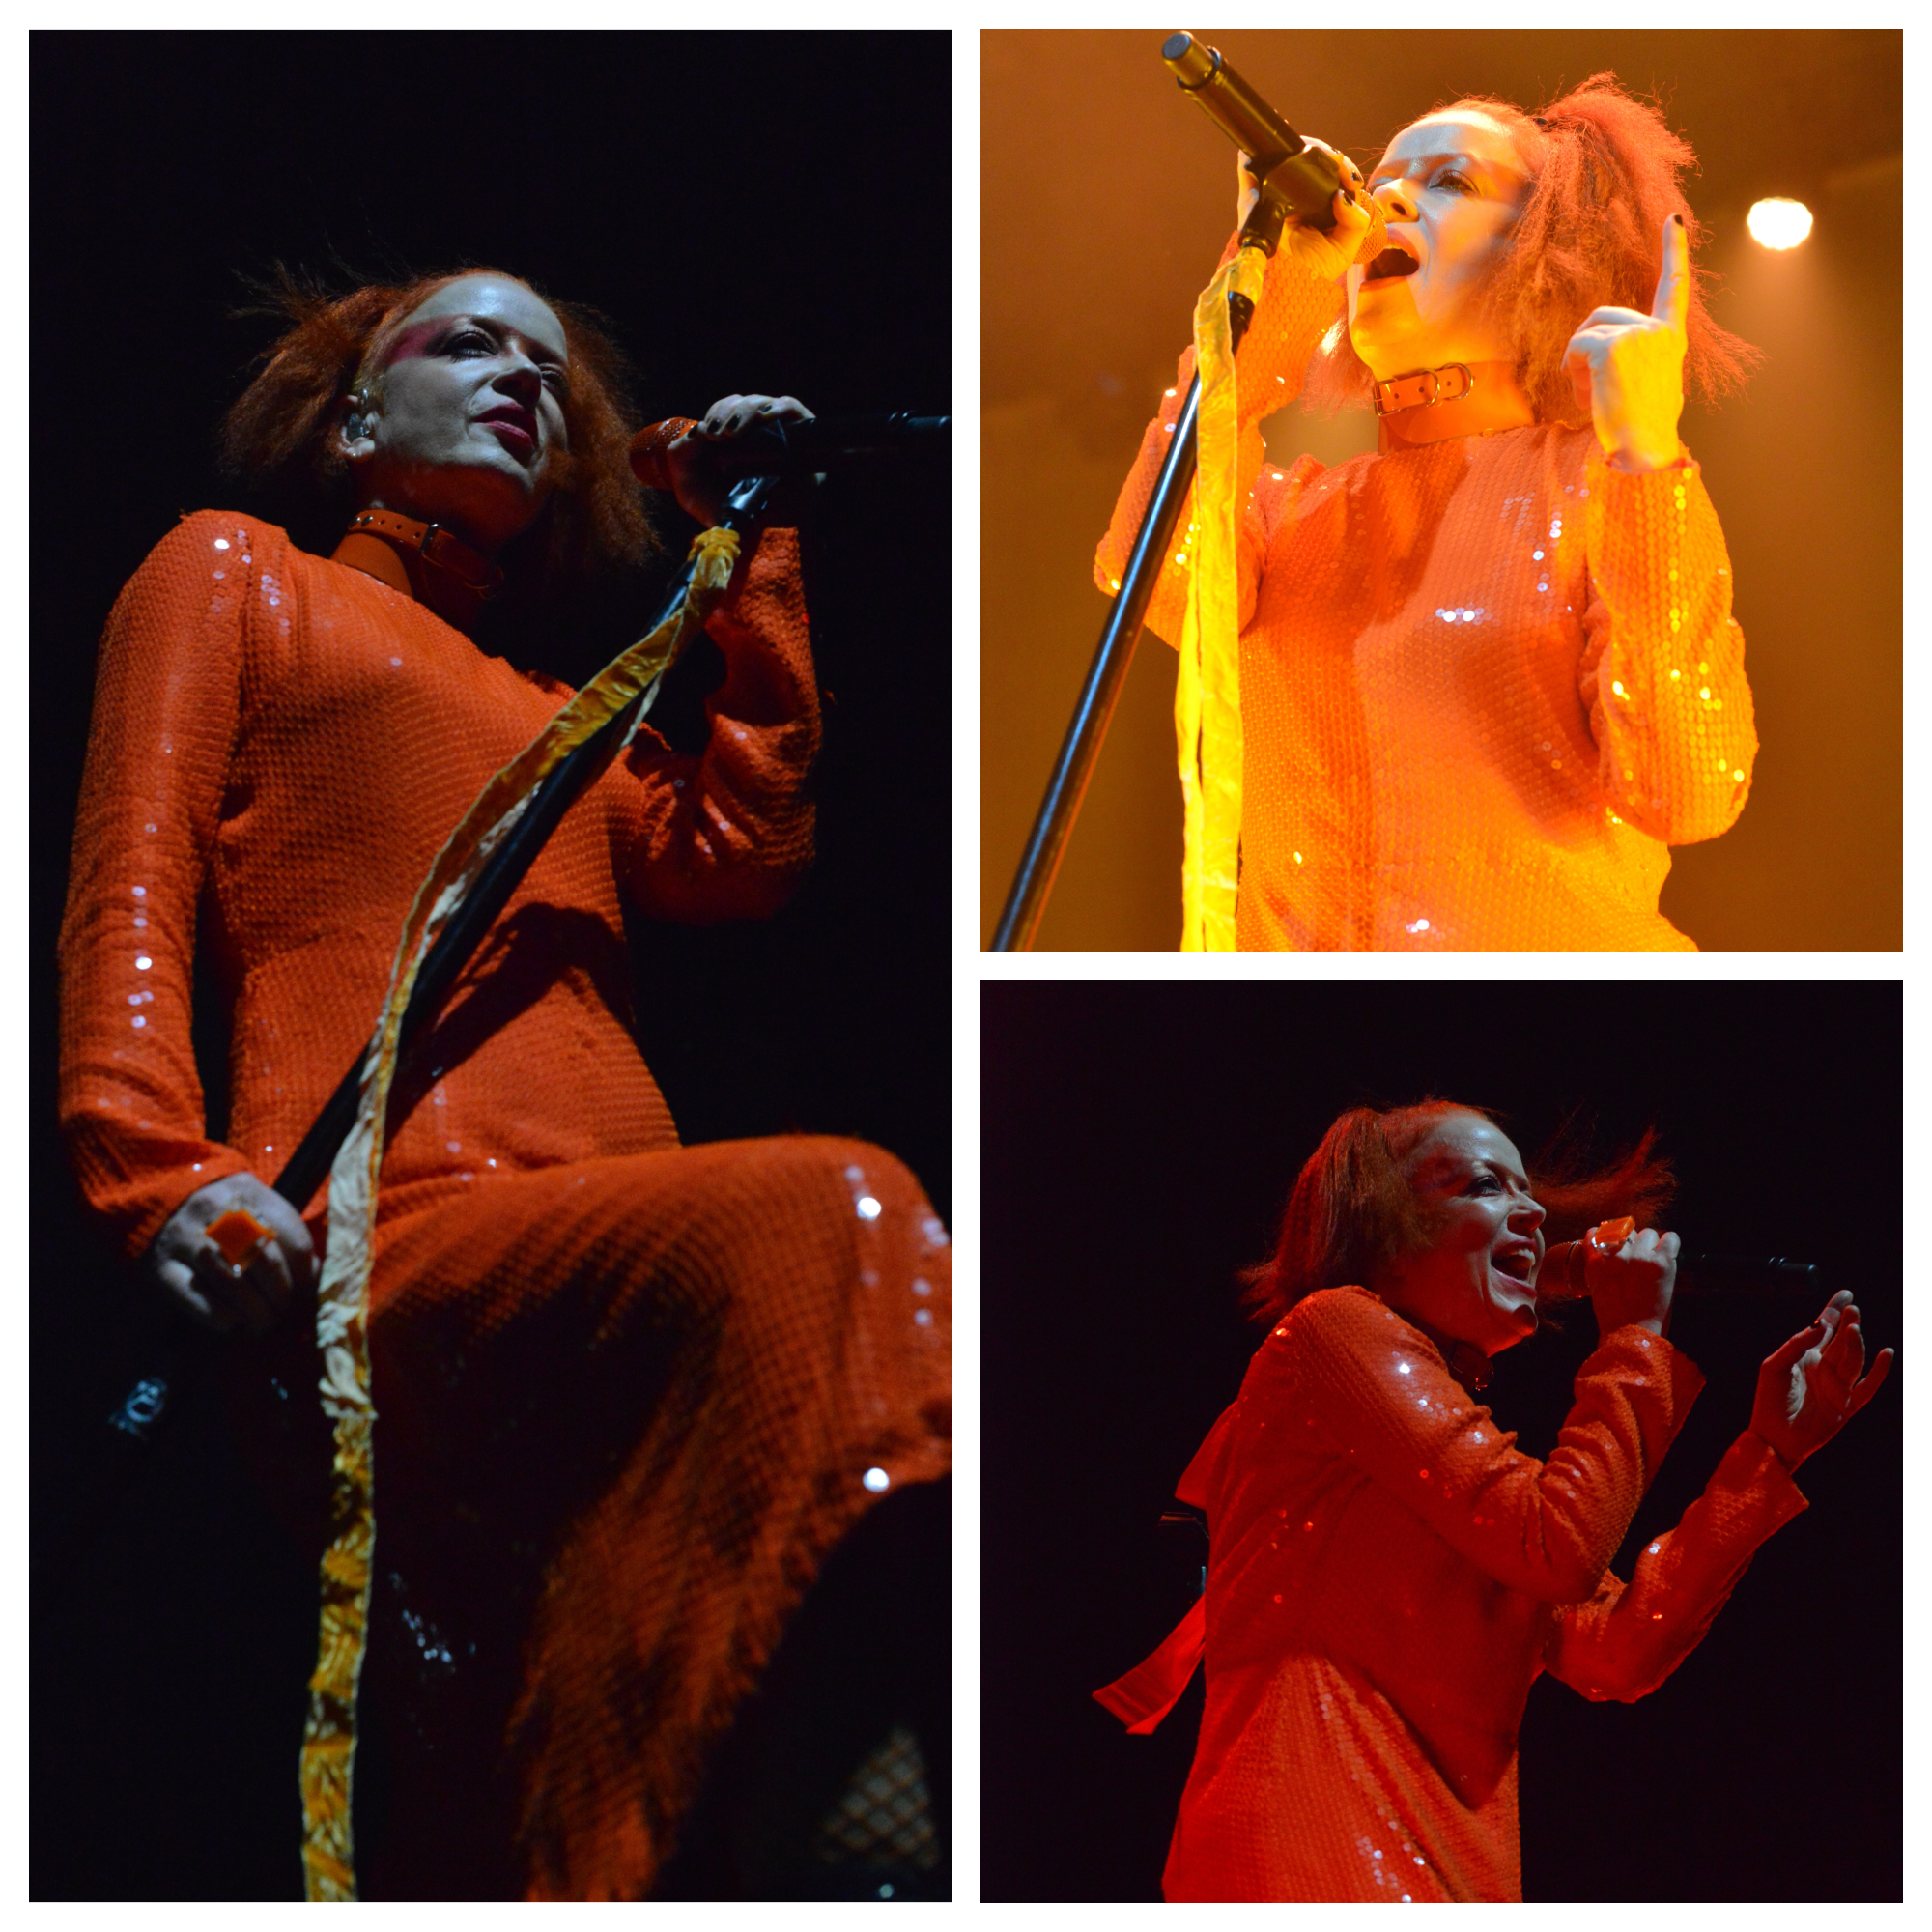 Shirley Manson of Garbage - photo by Russell Kershaw